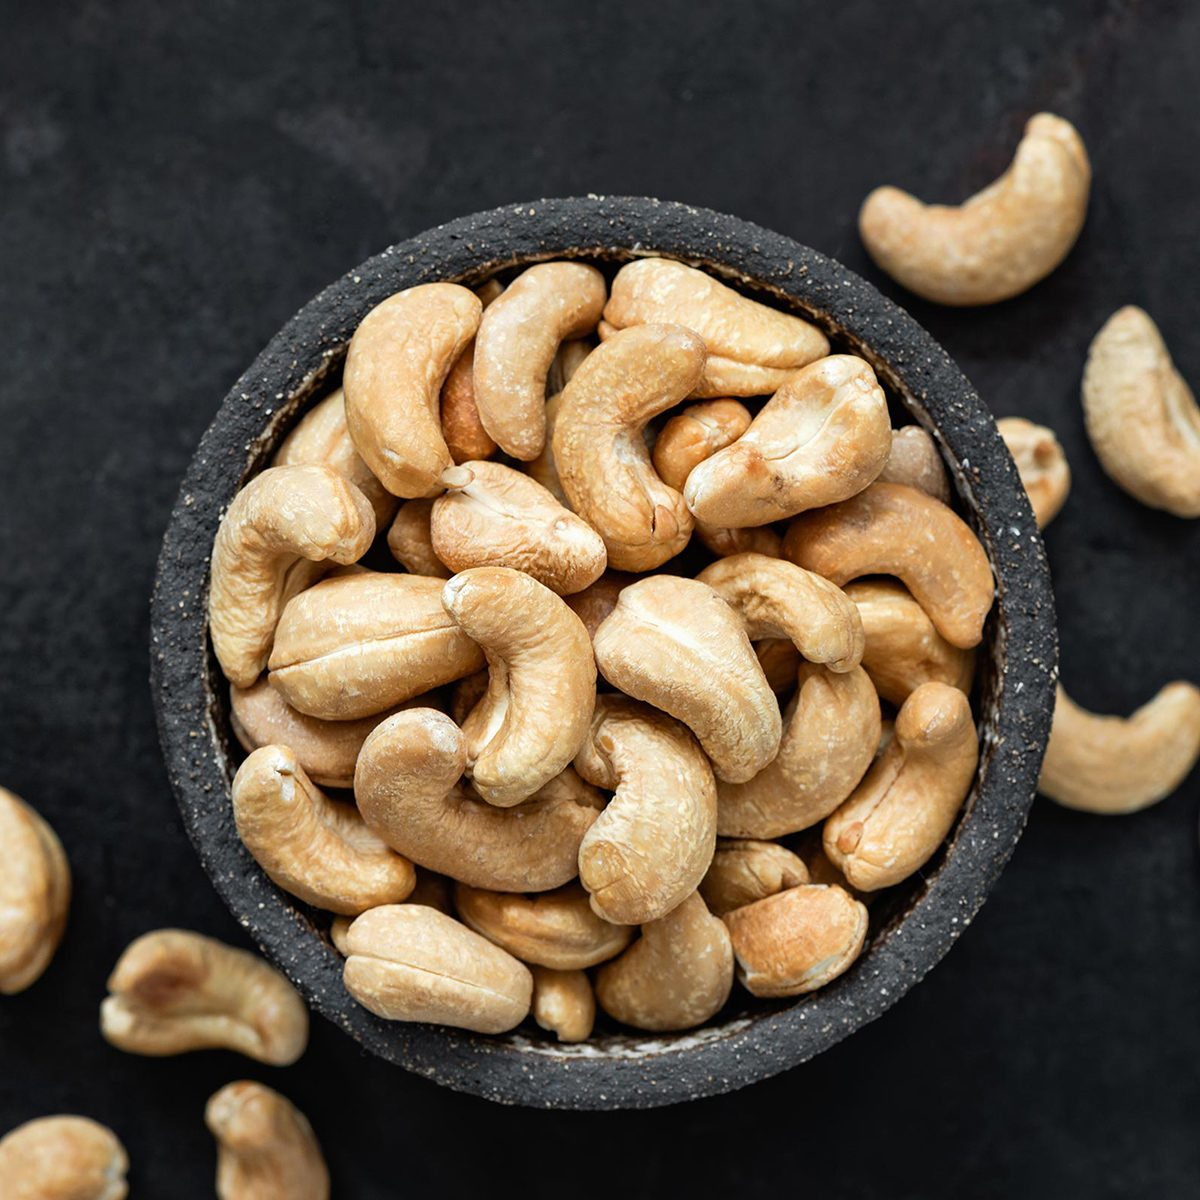 Cashew nuts in bowl on black background.